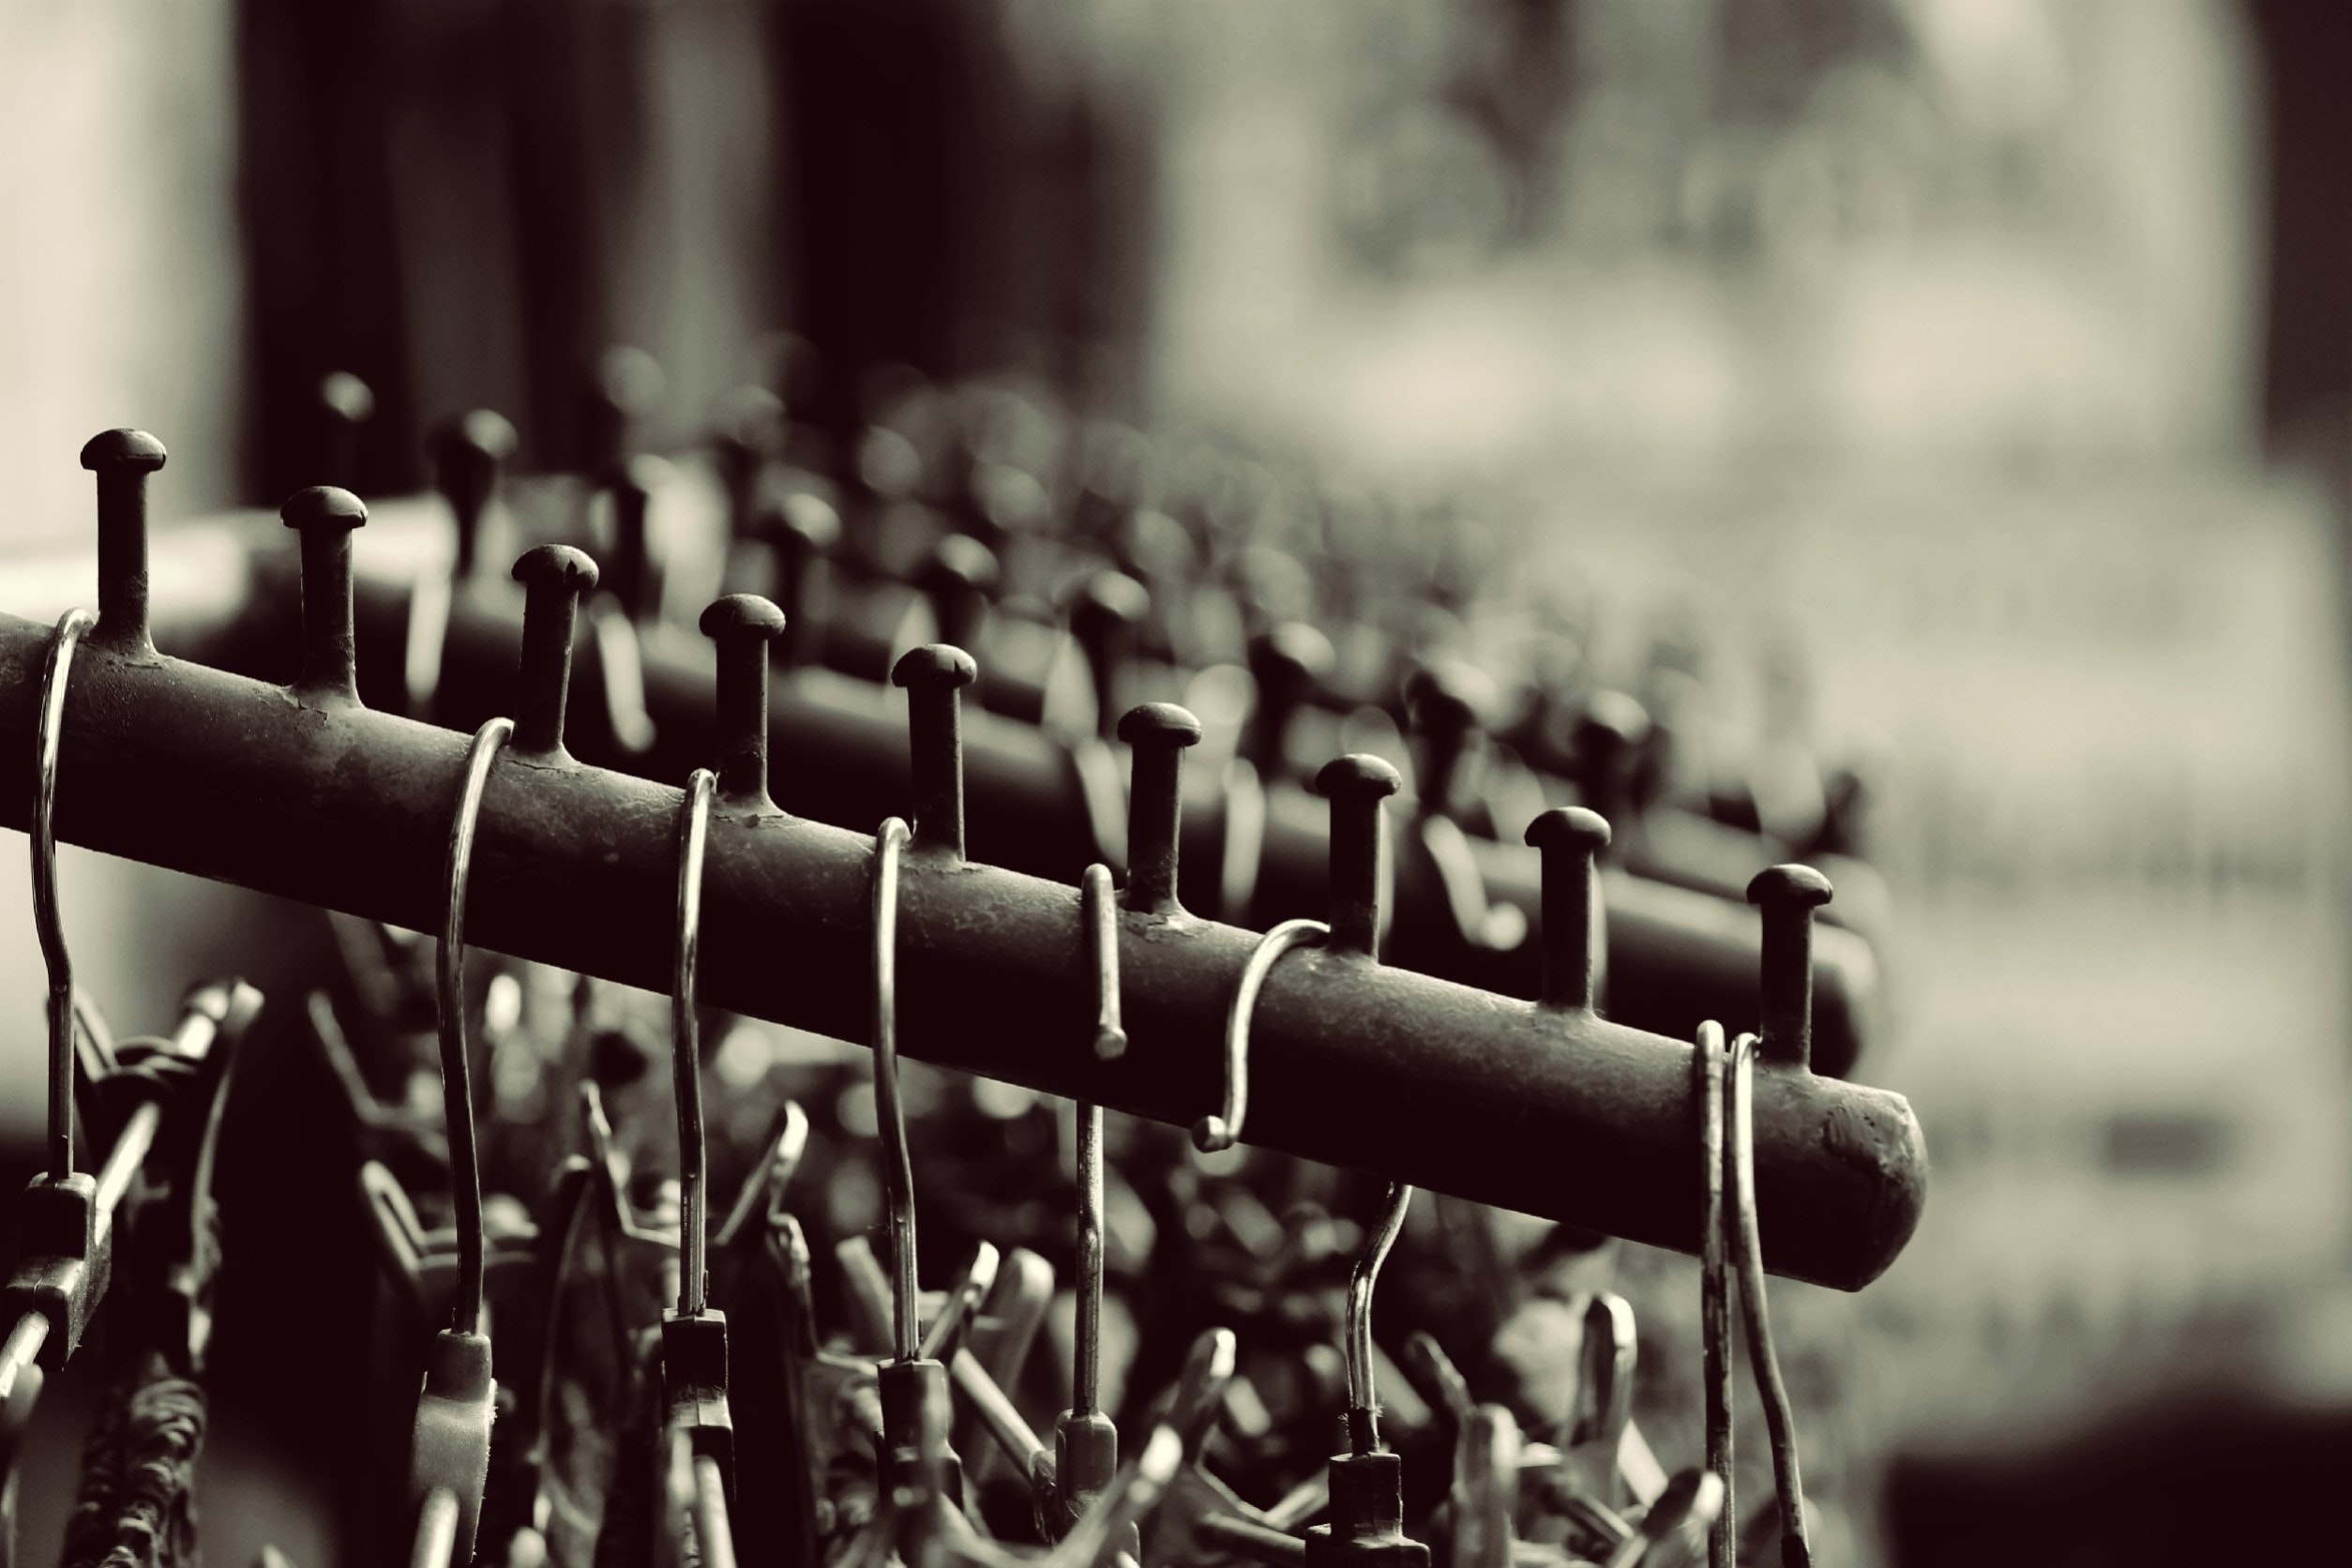 Grayscale Photography of Hangers on Rack, Rack, Steel, Outdoors, Metal, HQ Photo